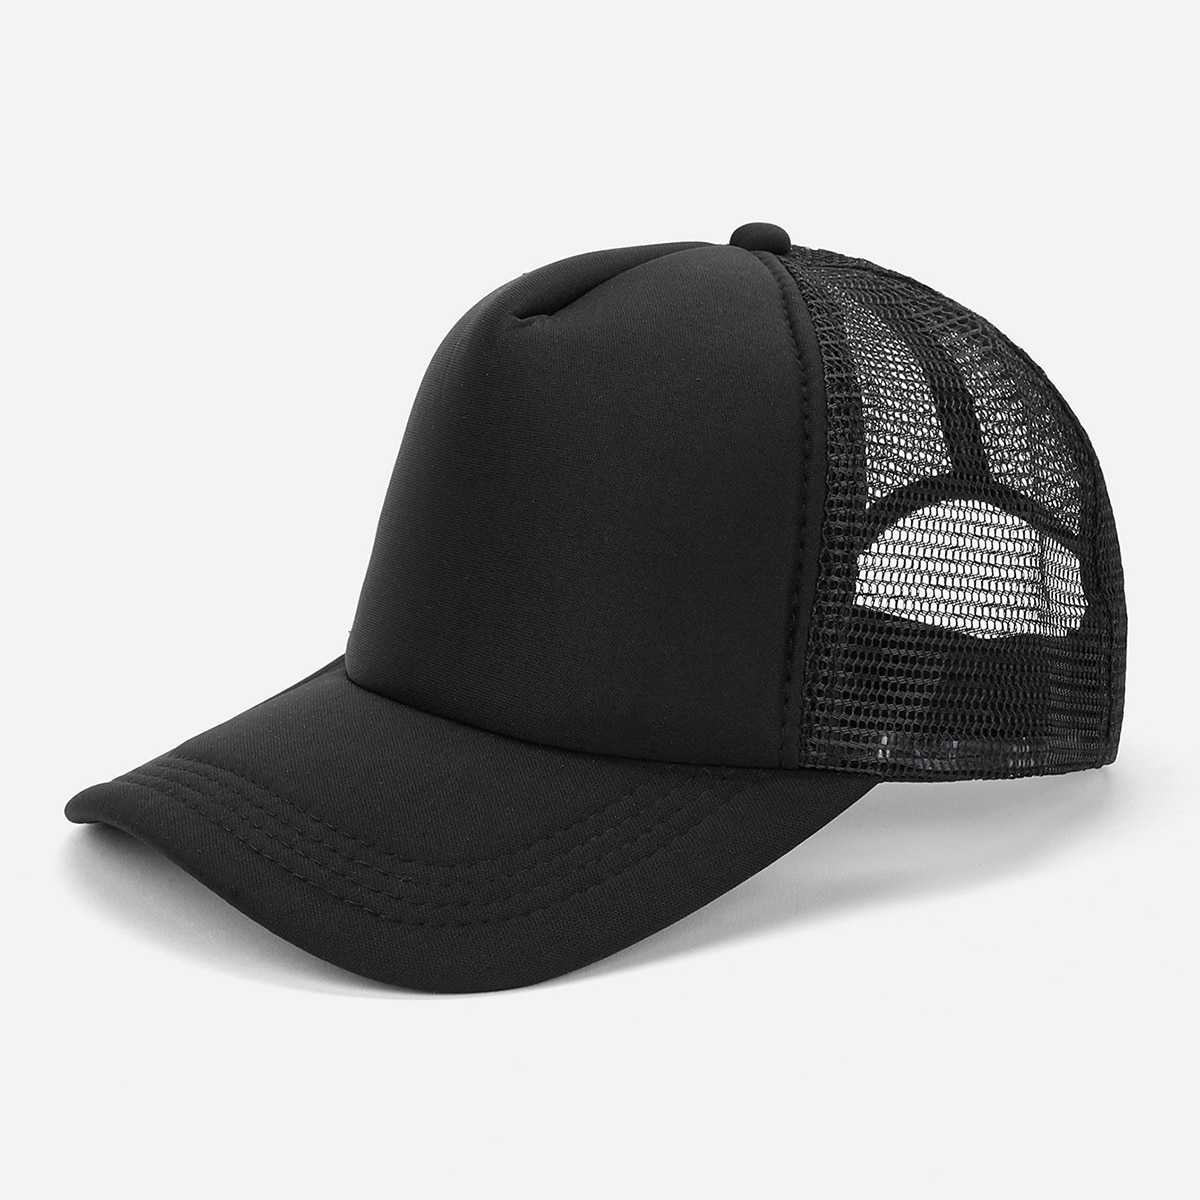 Guys Plain Contrast Mesh Baseball Cap in Black by ROMWE on GOOFASH